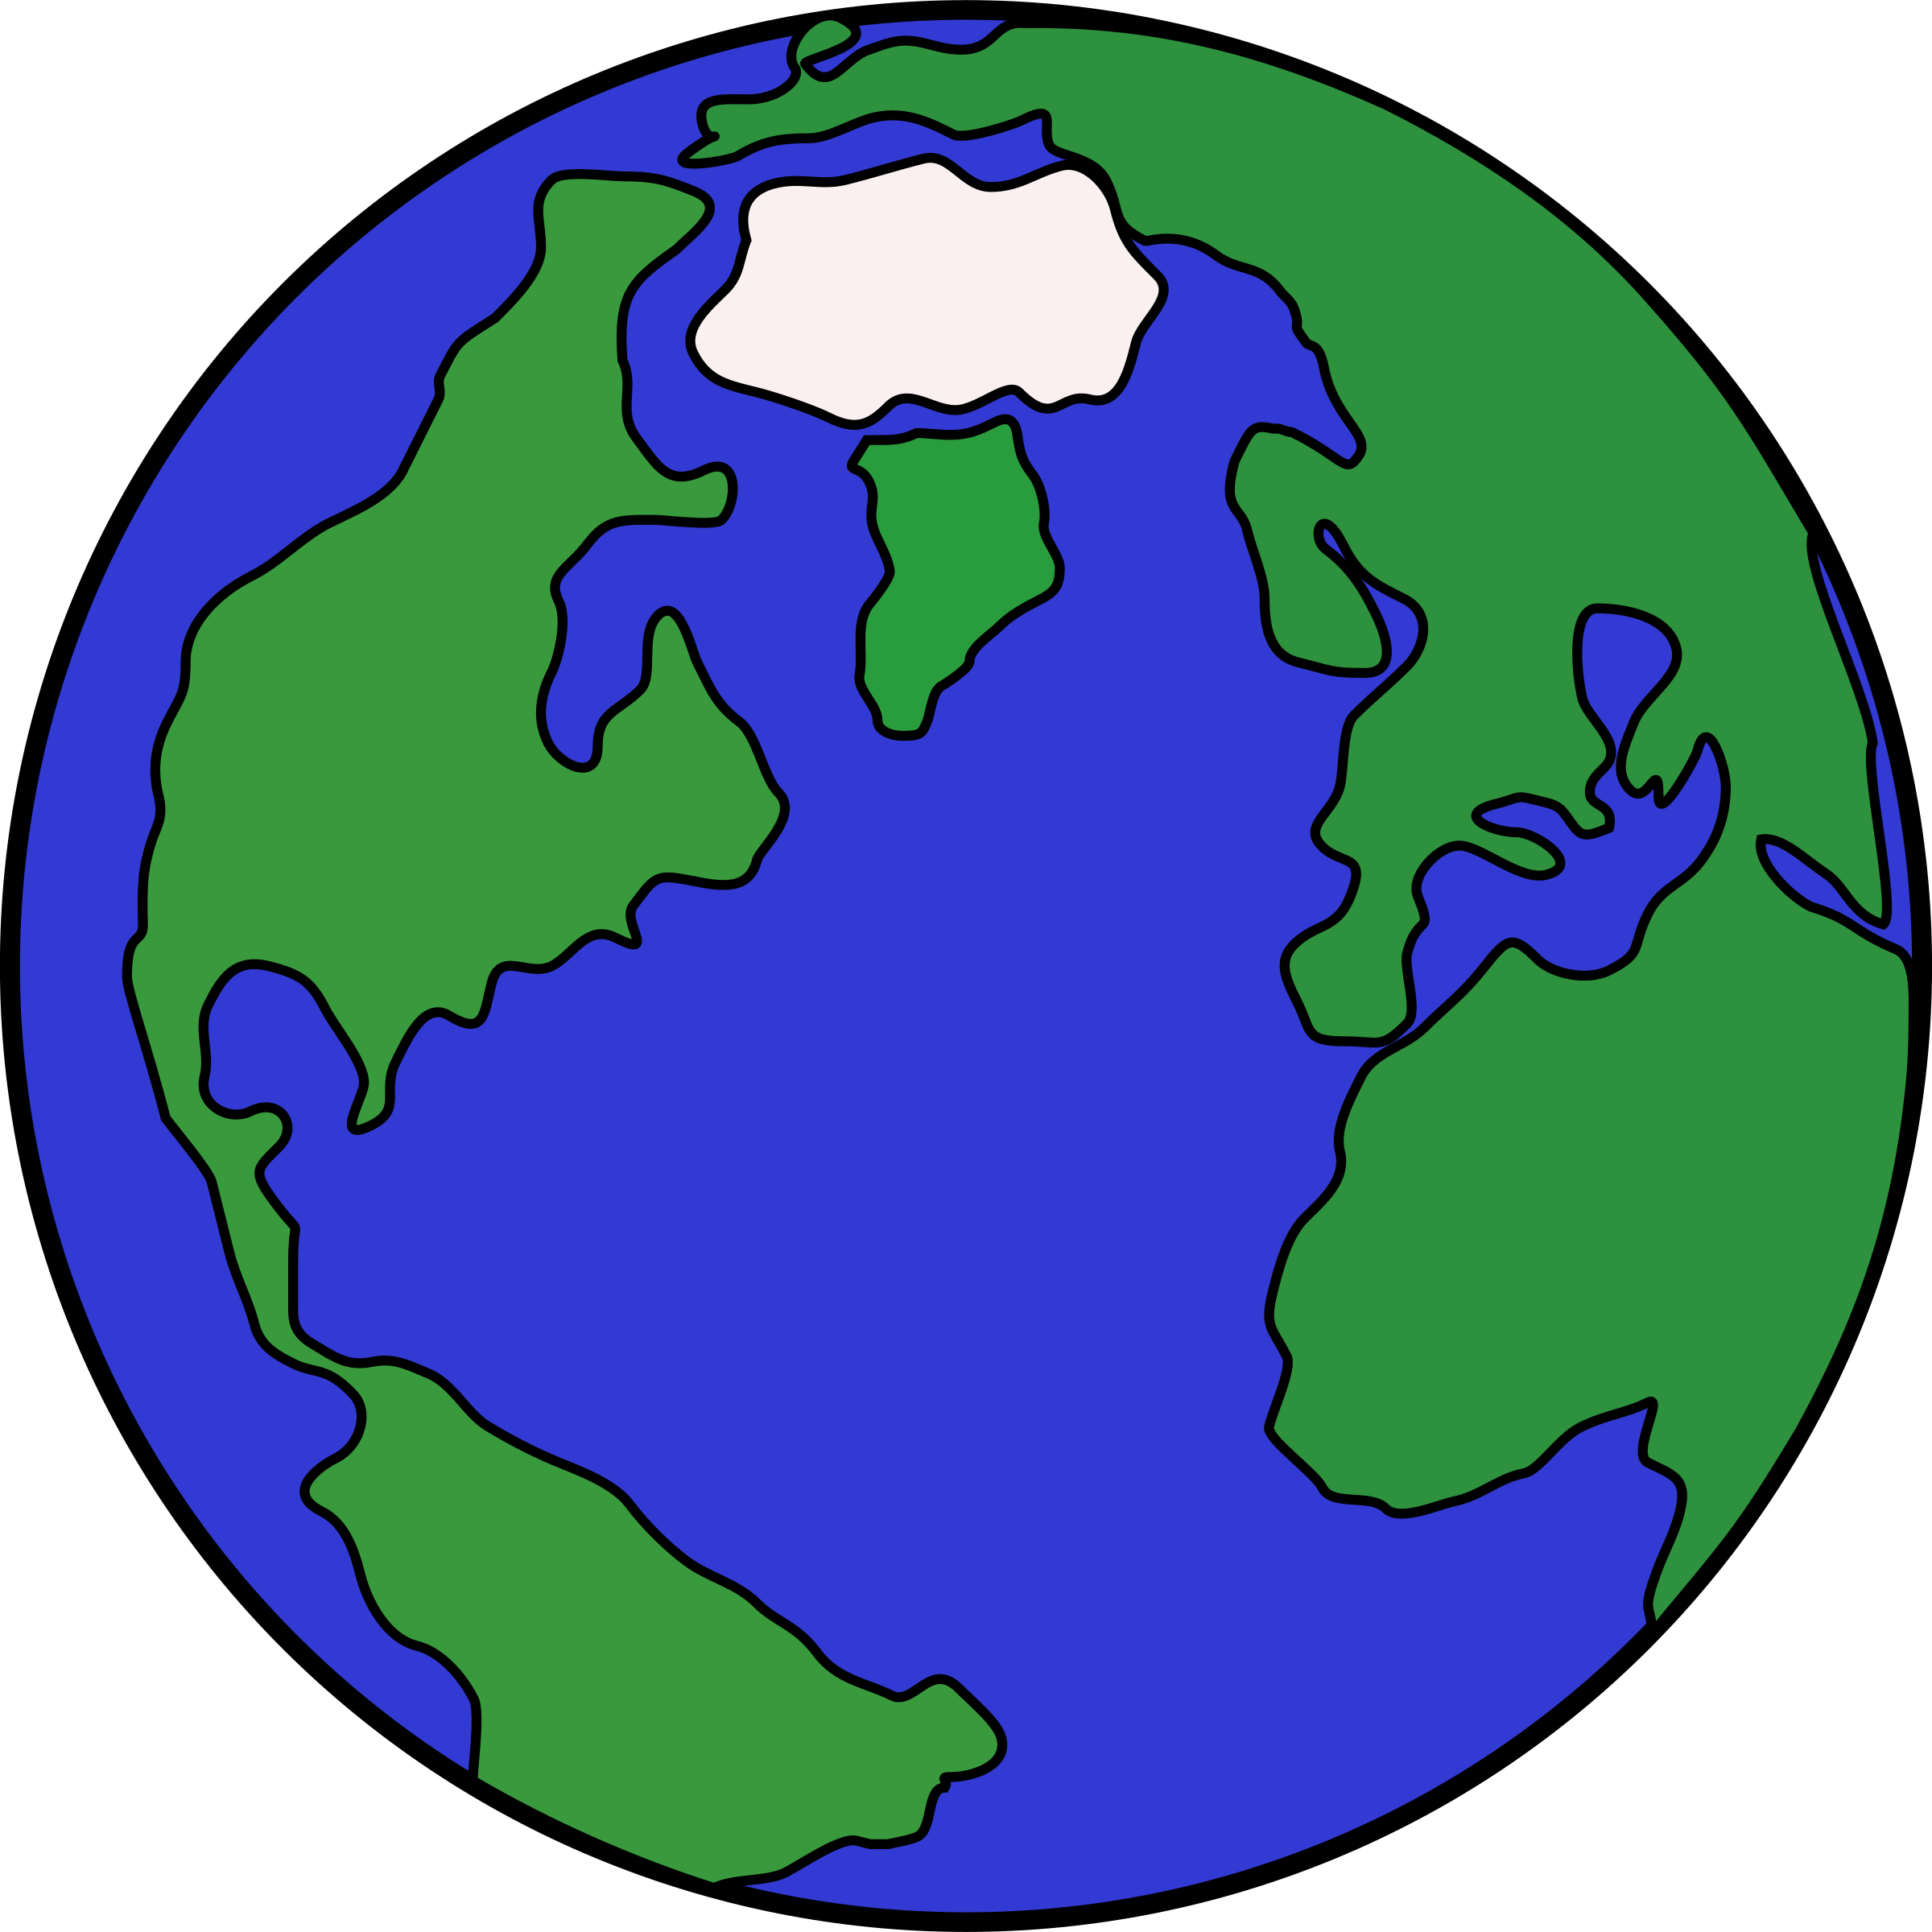 Planet clip art hostted